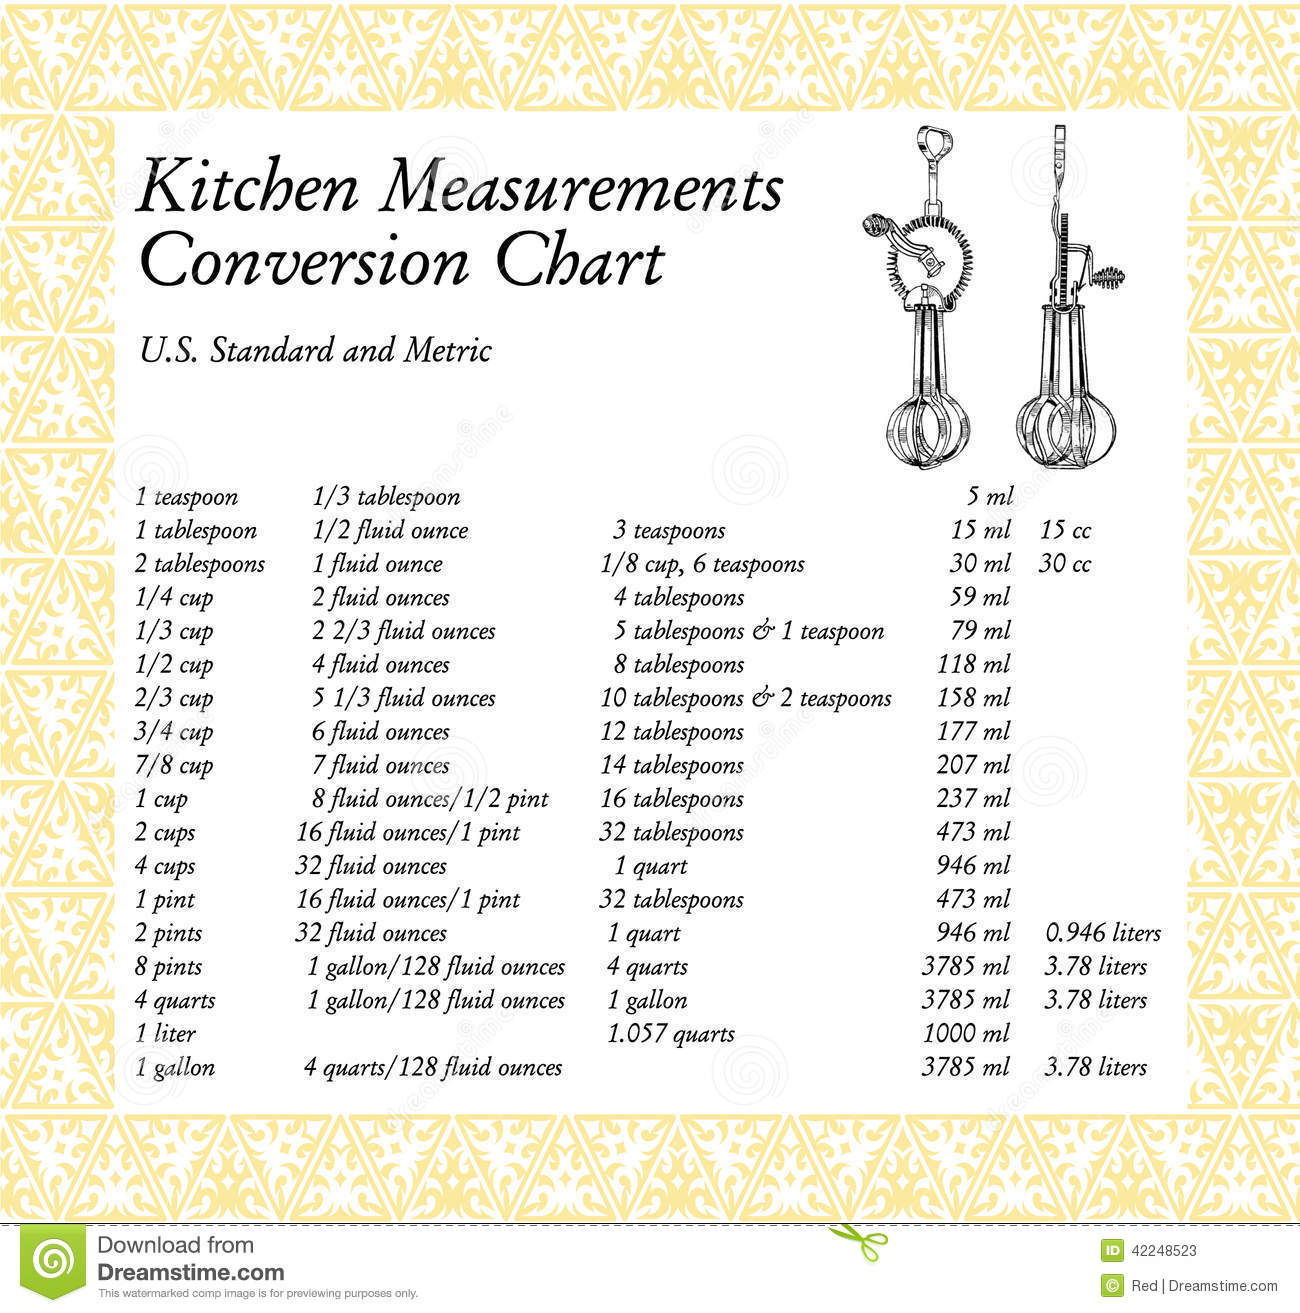 kitchen measurements conversion chart stock illustration image 42248523. Black Bedroom Furniture Sets. Home Design Ideas